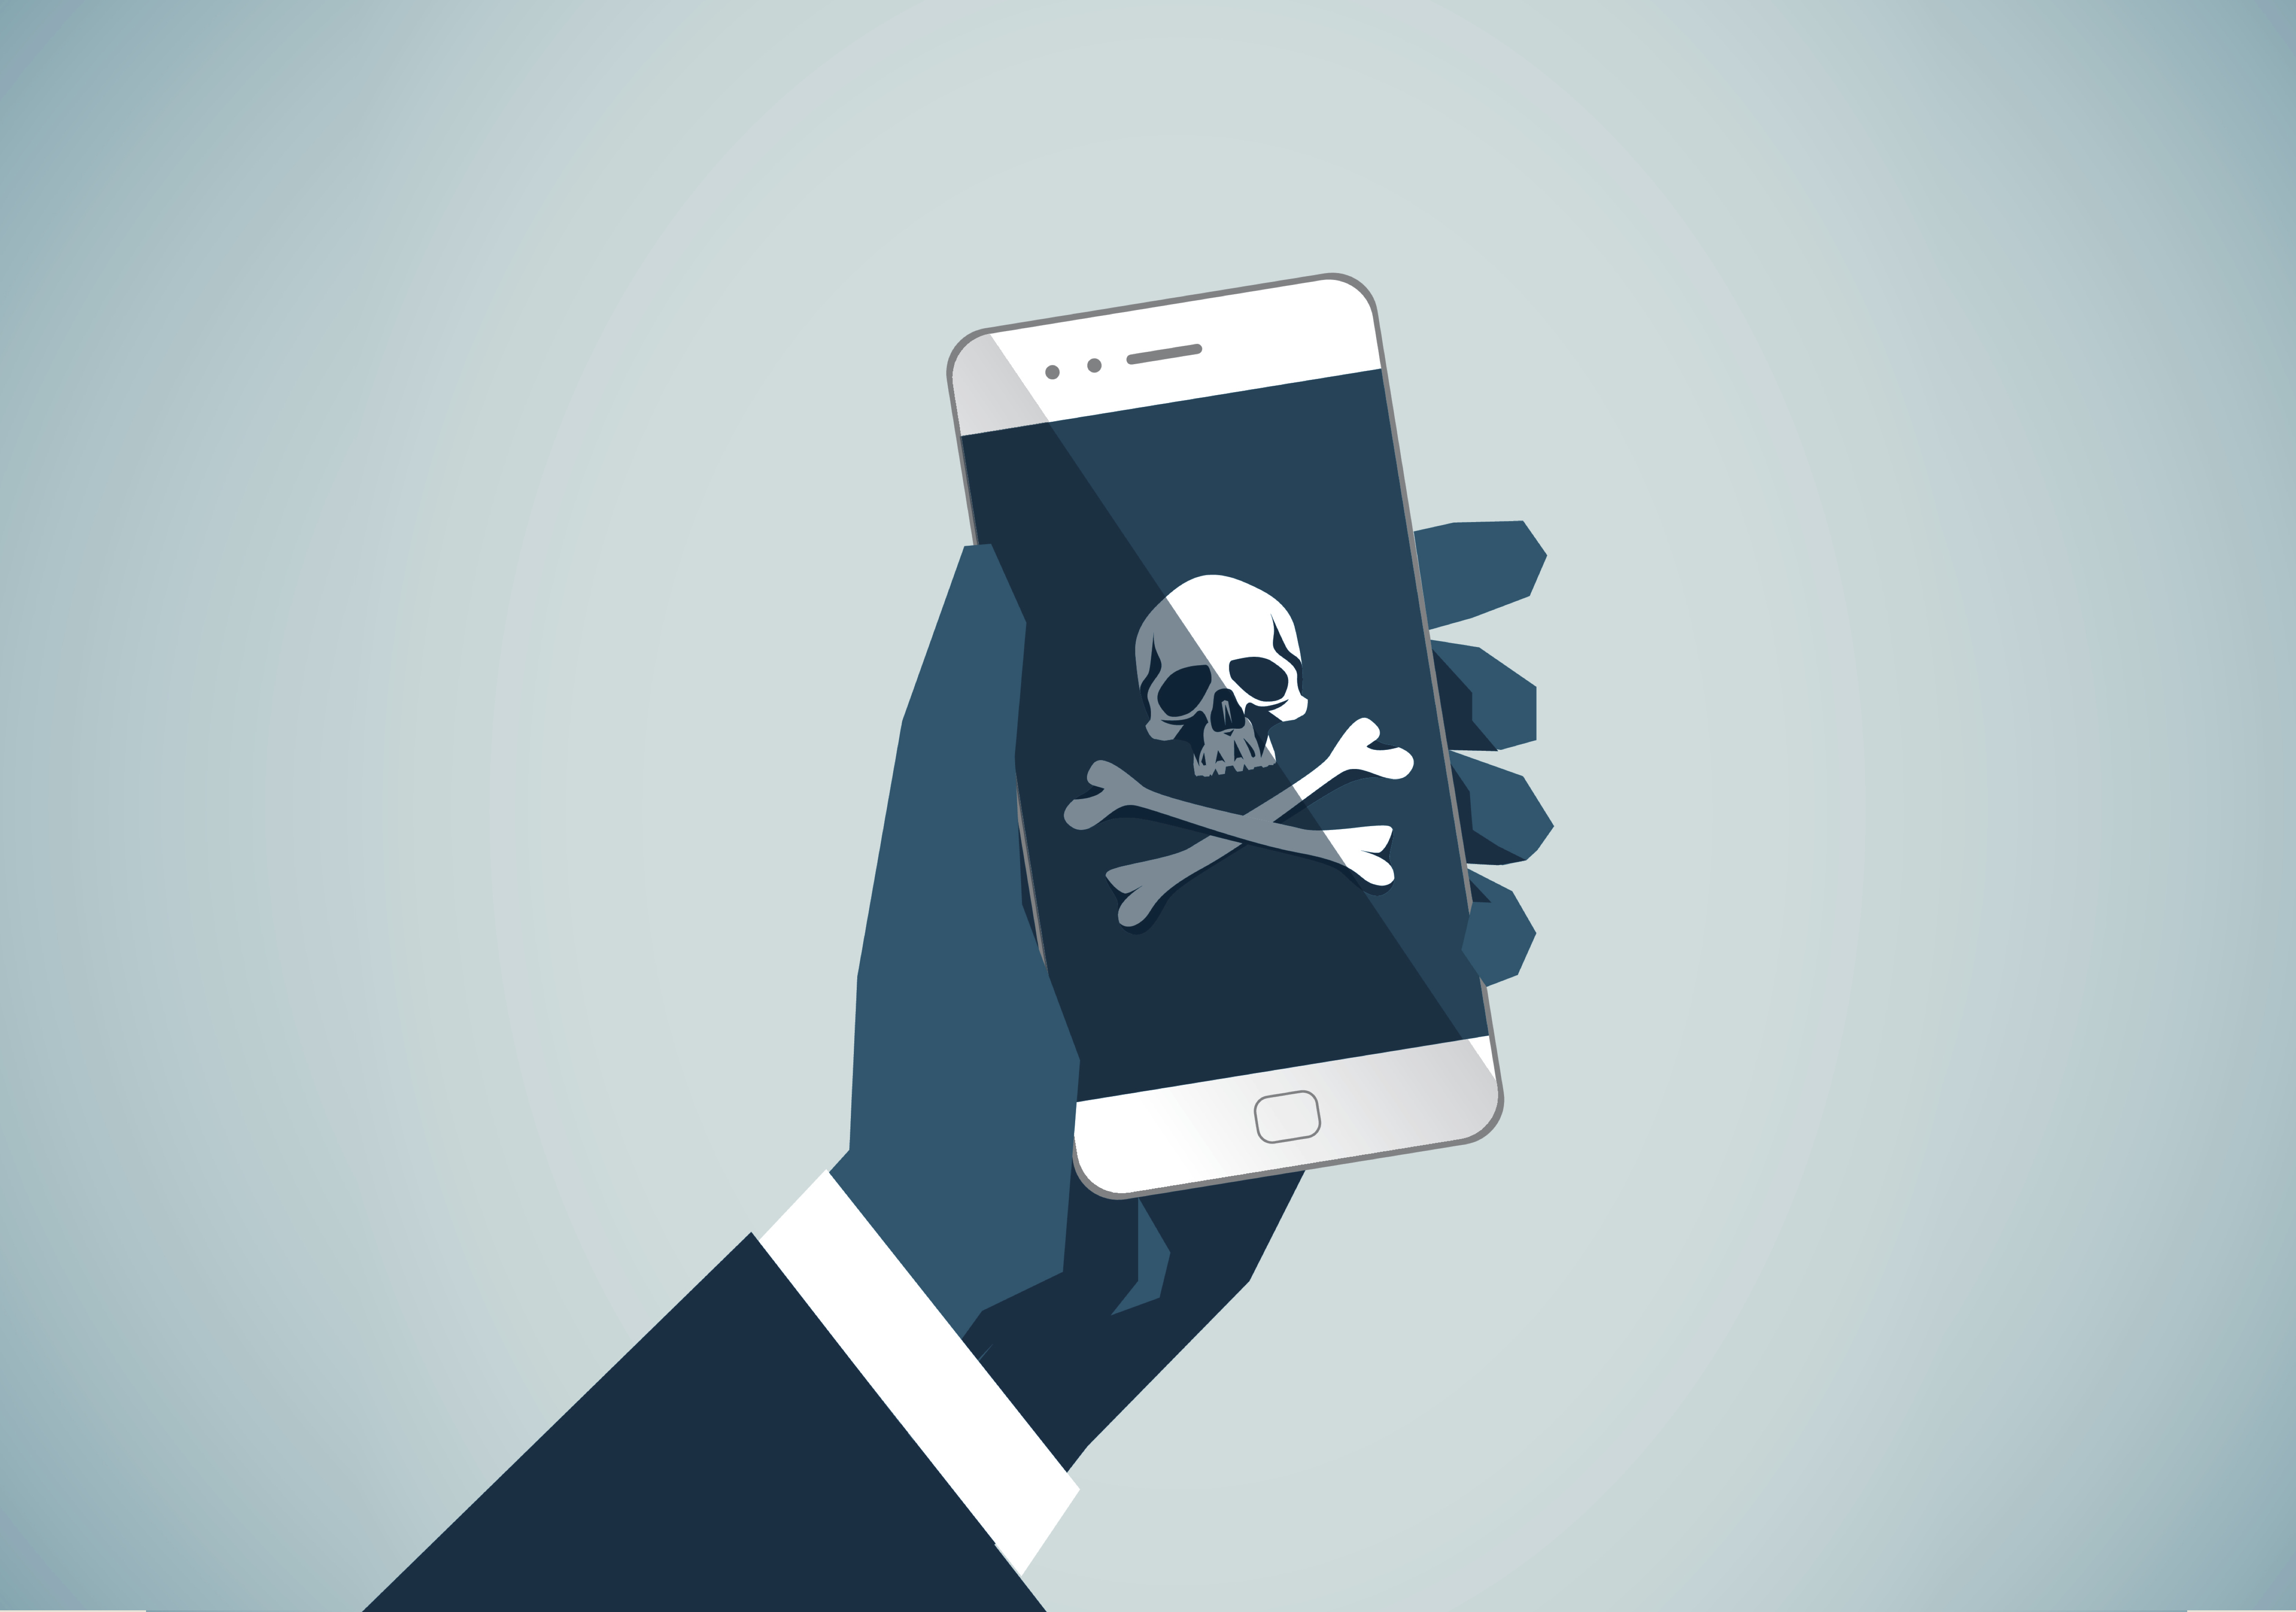 New Android adware found in 200 apps on Google Play | TechCrunch